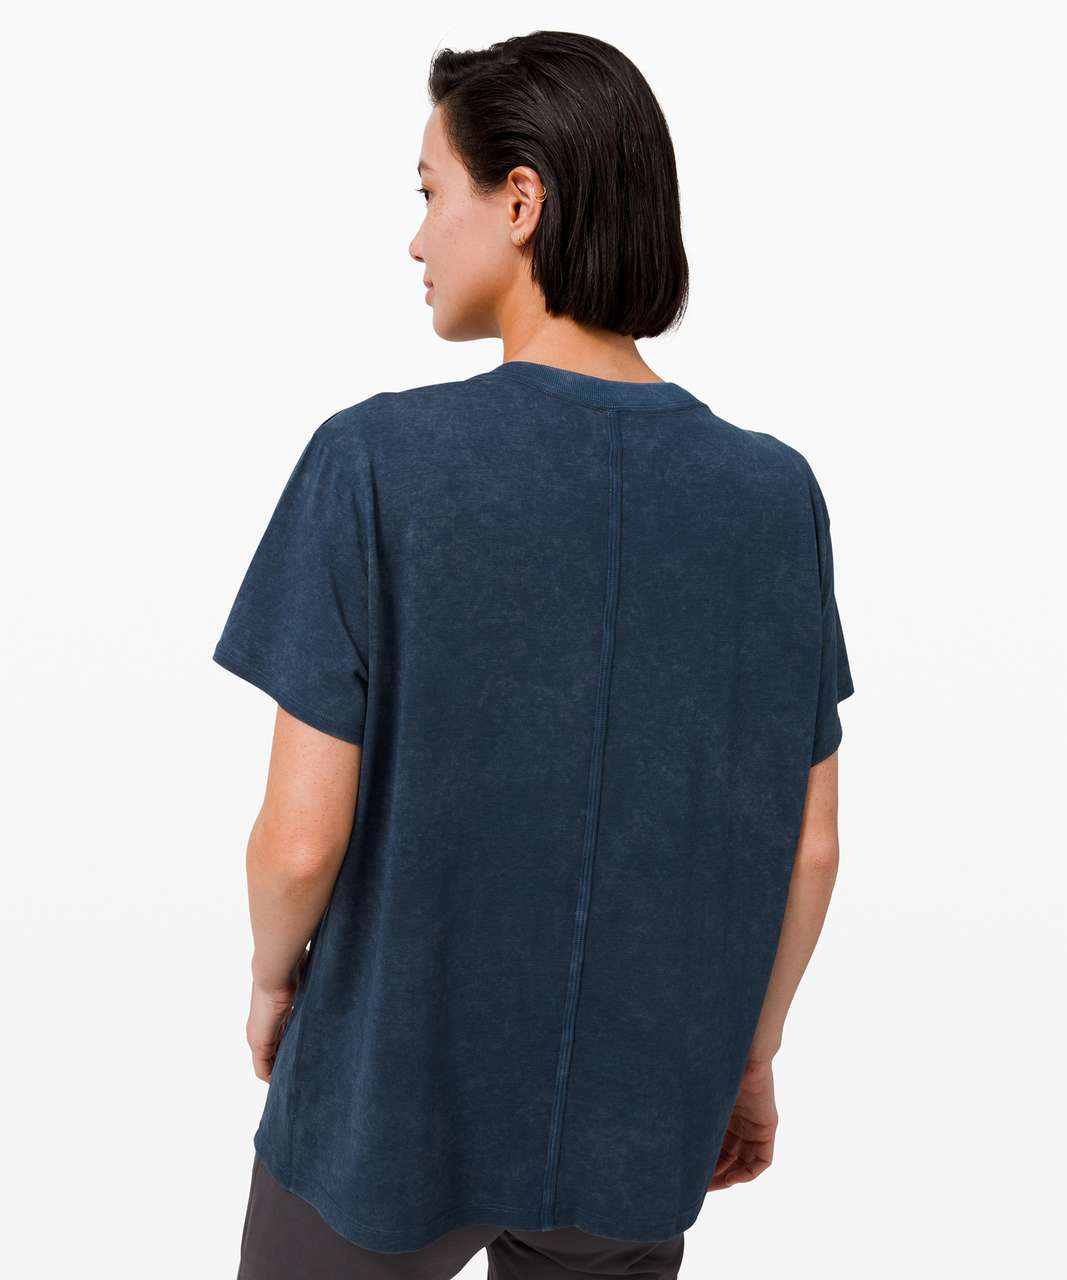 Lululemon All Yours Boyfriend Tee *Cloud Wash - Cloudy Wash True Navy